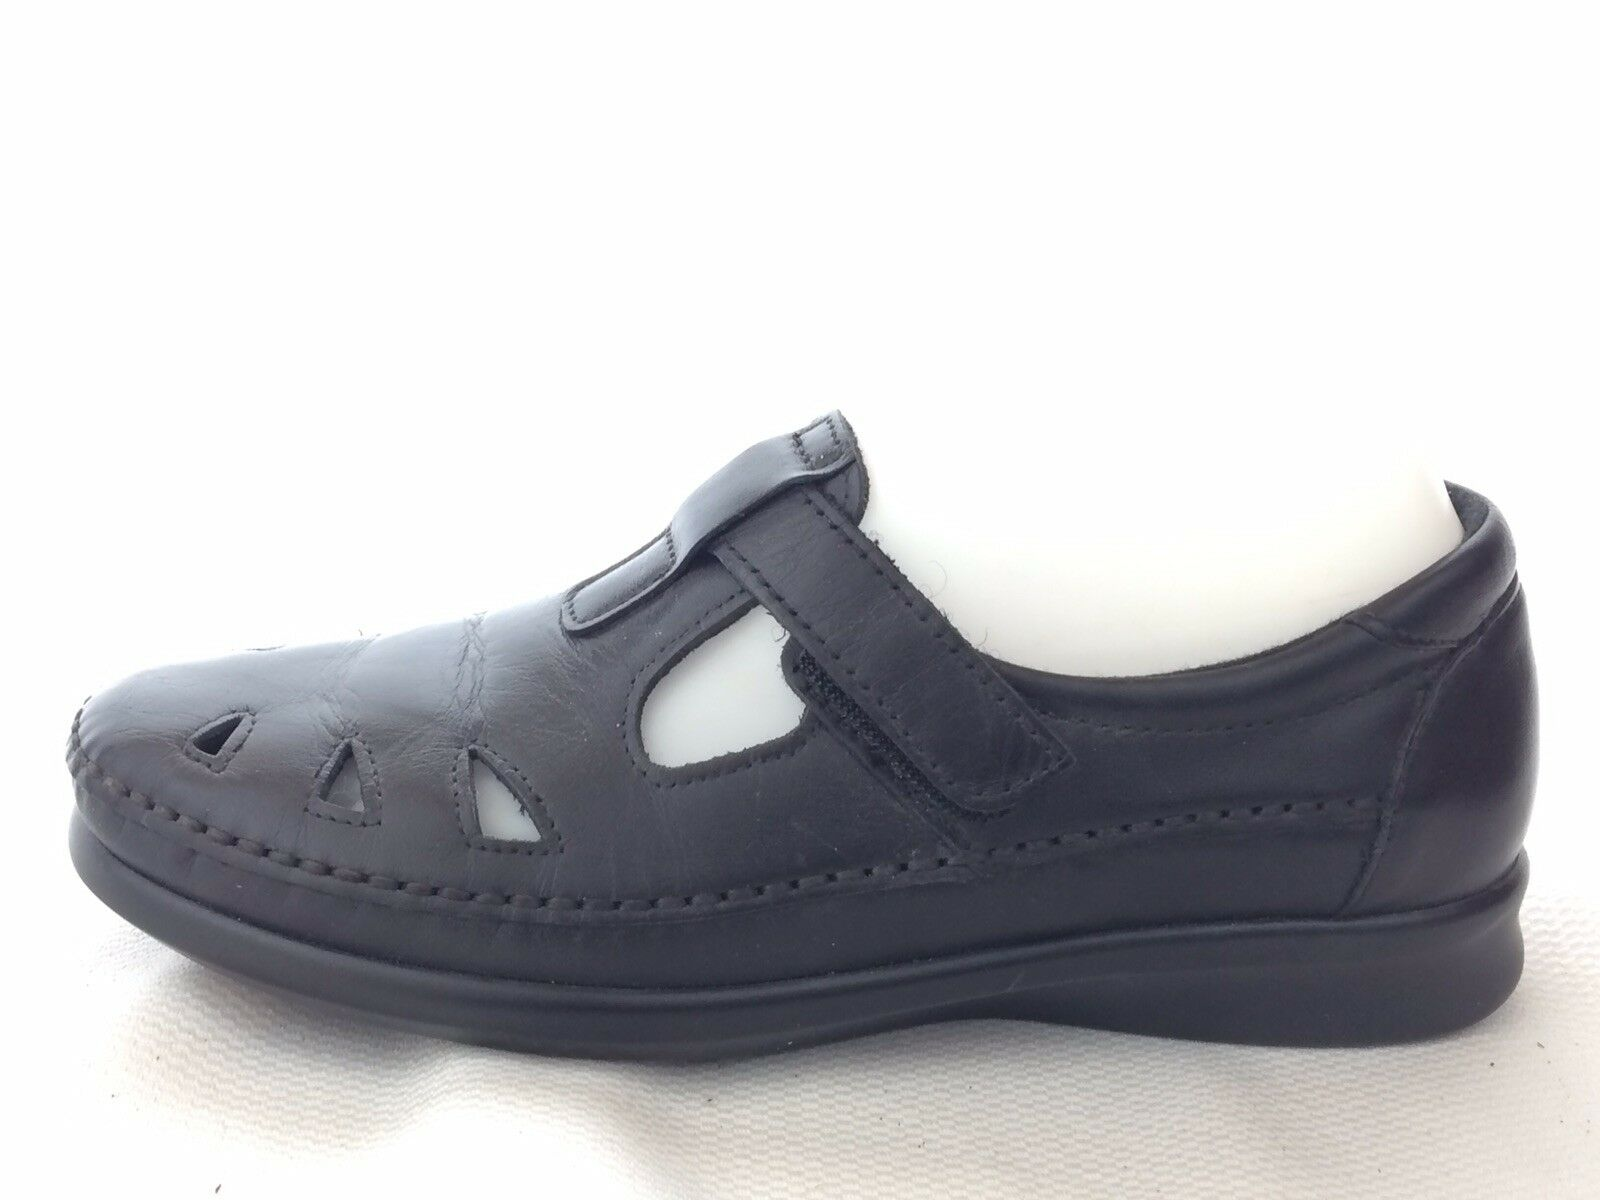 Special Air Service confort femme 8.5 M noir cuir T Strap Mary Jane MOC Mocassin Walking chaussures